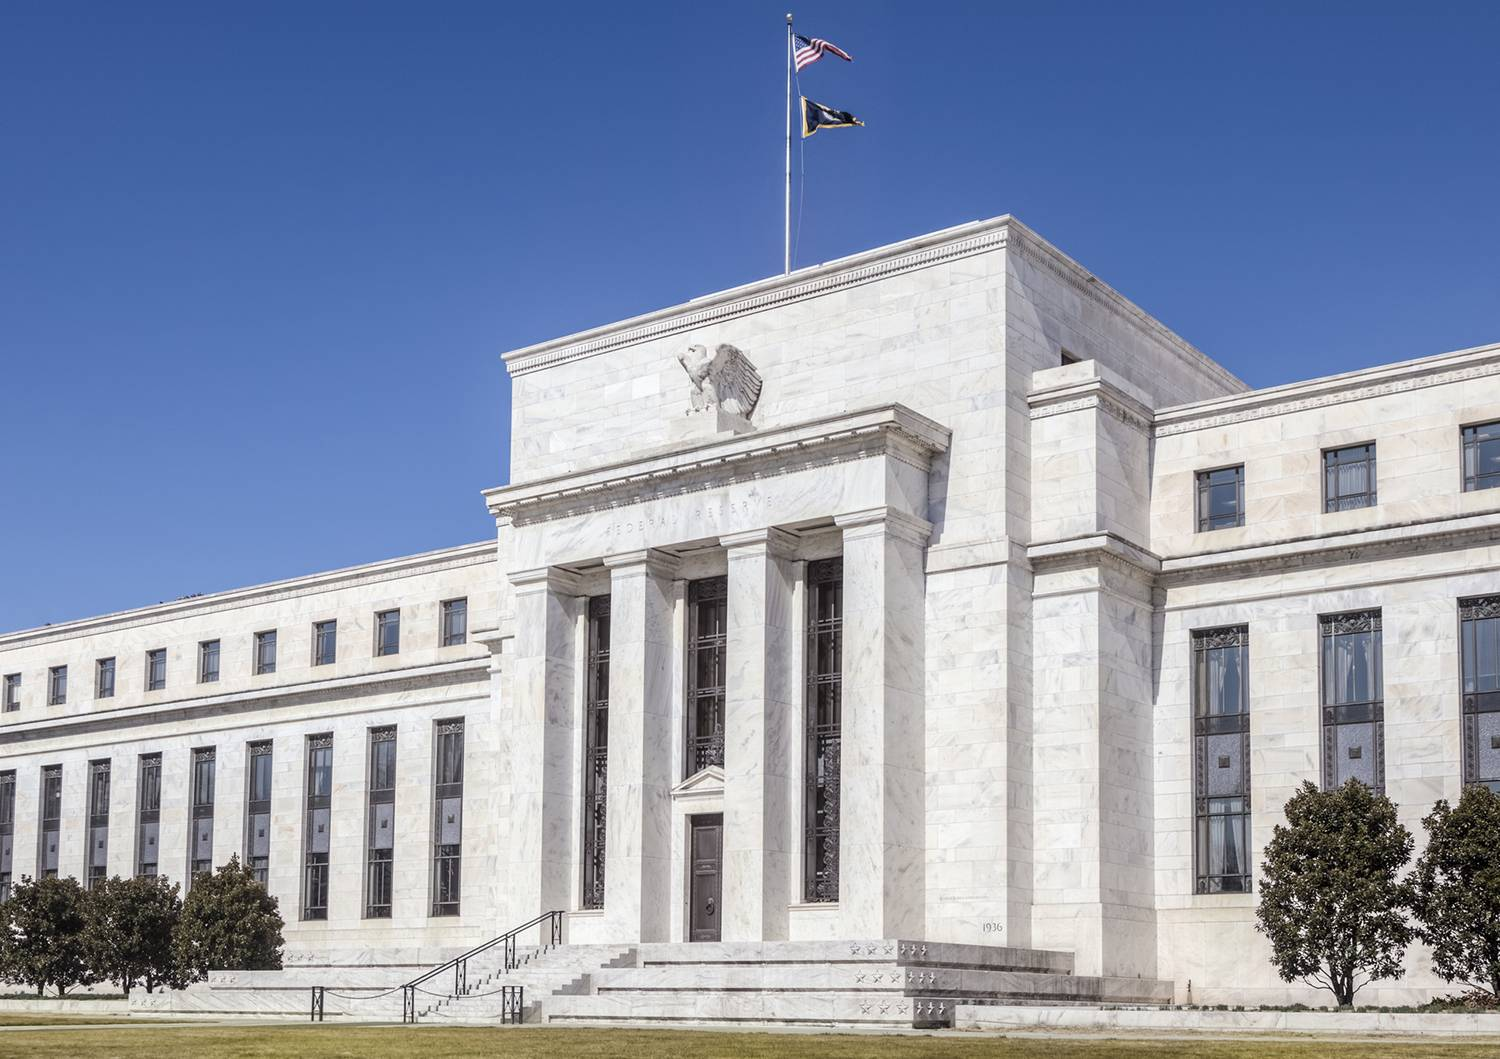 iStock: U.S. Federal Reserve